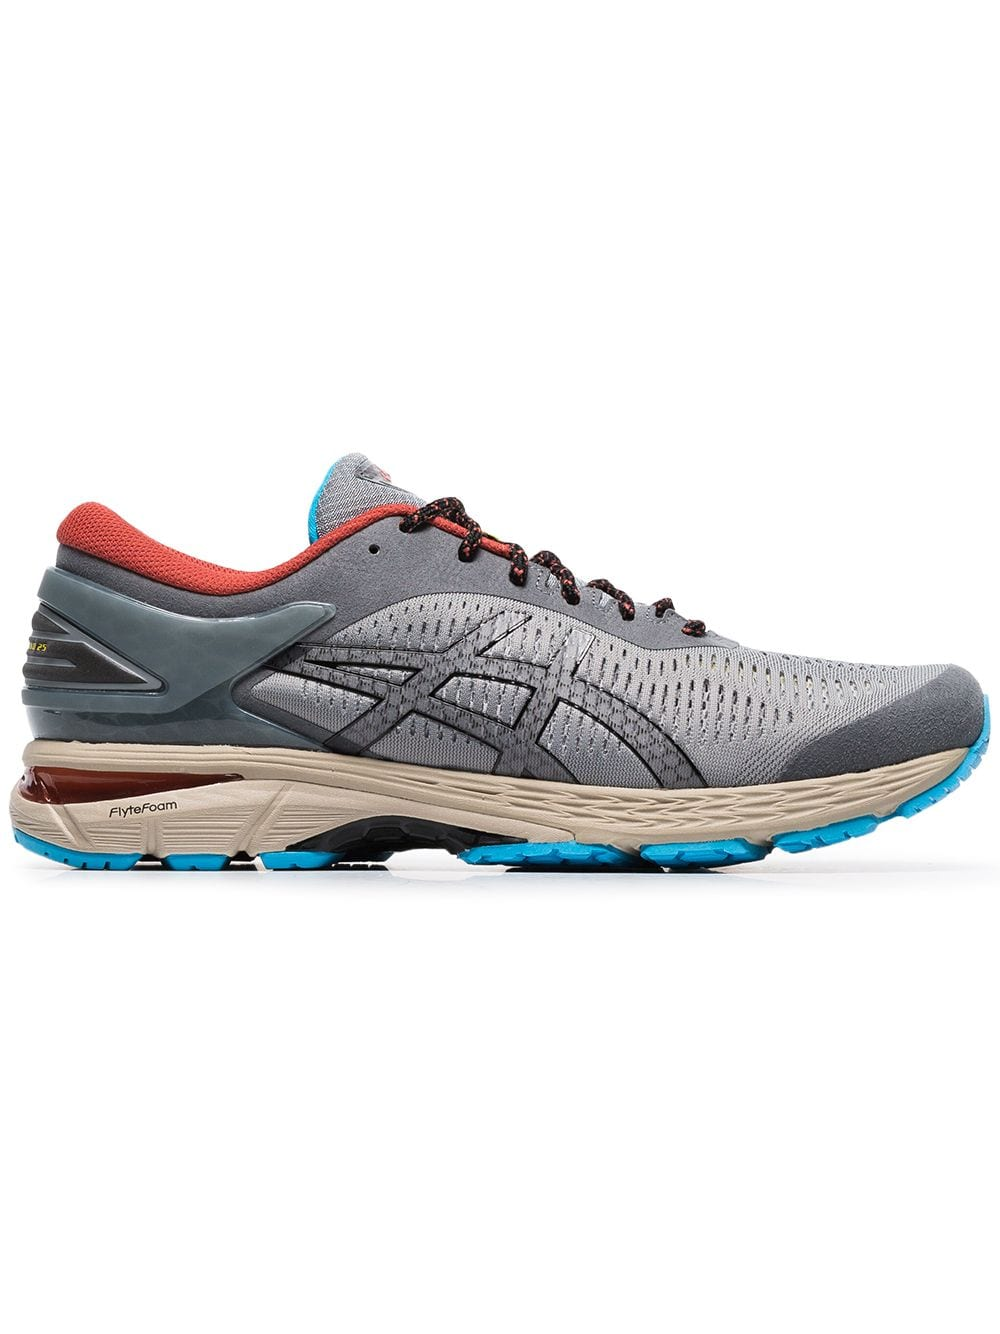 Grey Asics Gel Kayano 25 Trail Running Shoe Brands Asics Asics Men